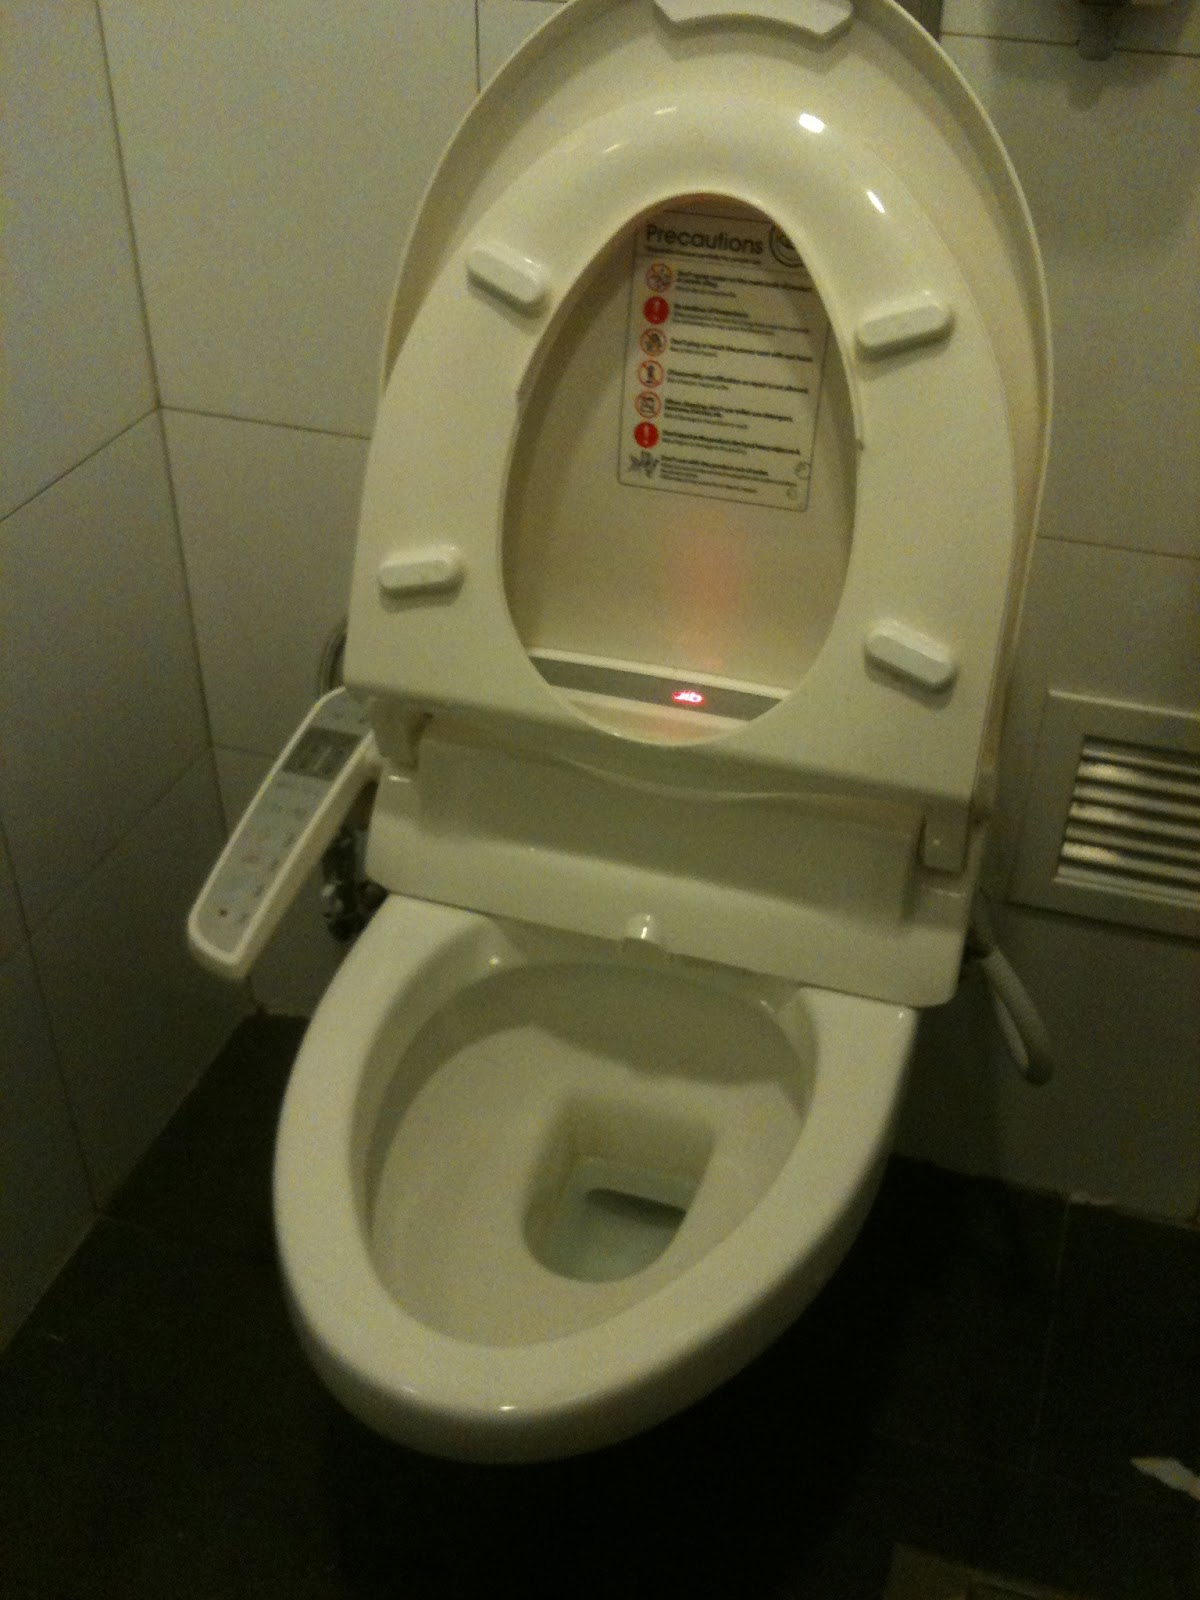 i enjoy bidet intelligent toilet seat you can enjoy you try before a bidet wash